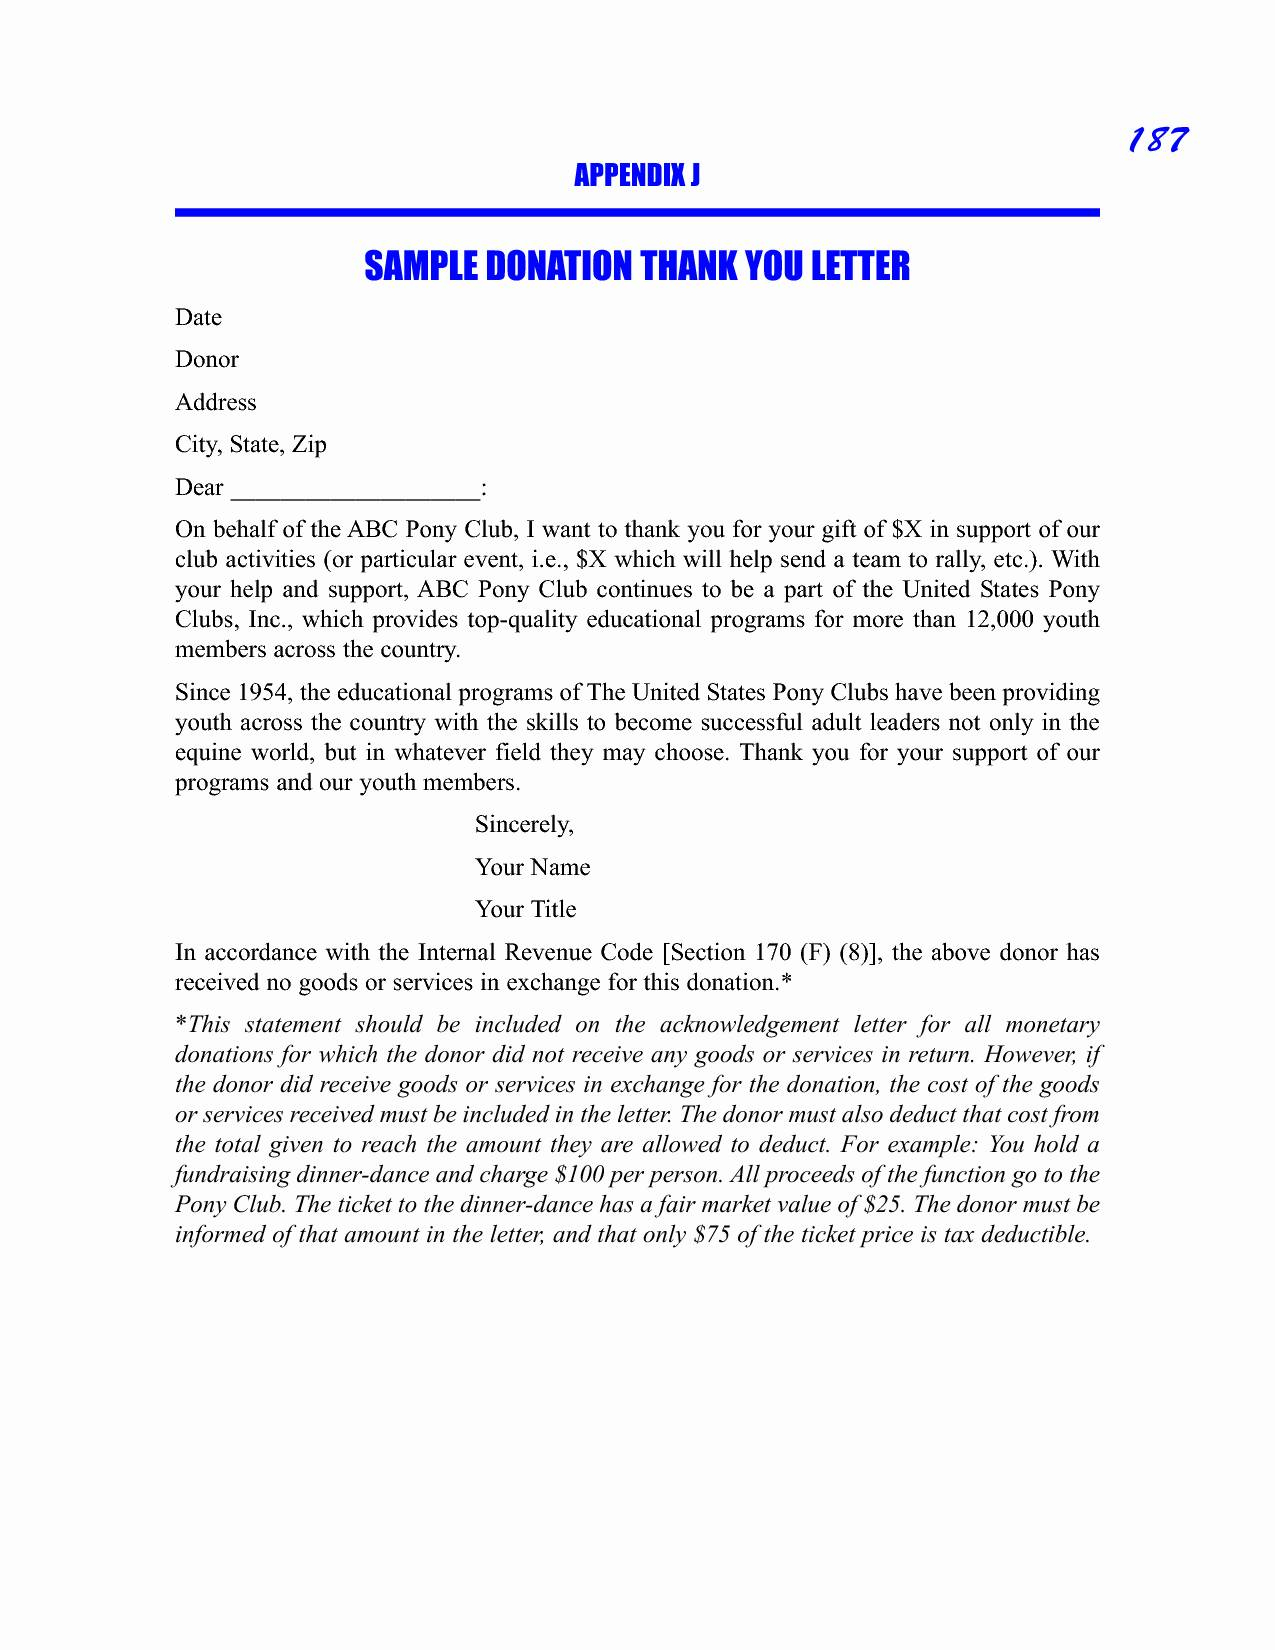 scholarship guidelines template - donation thank you letter template examples letter